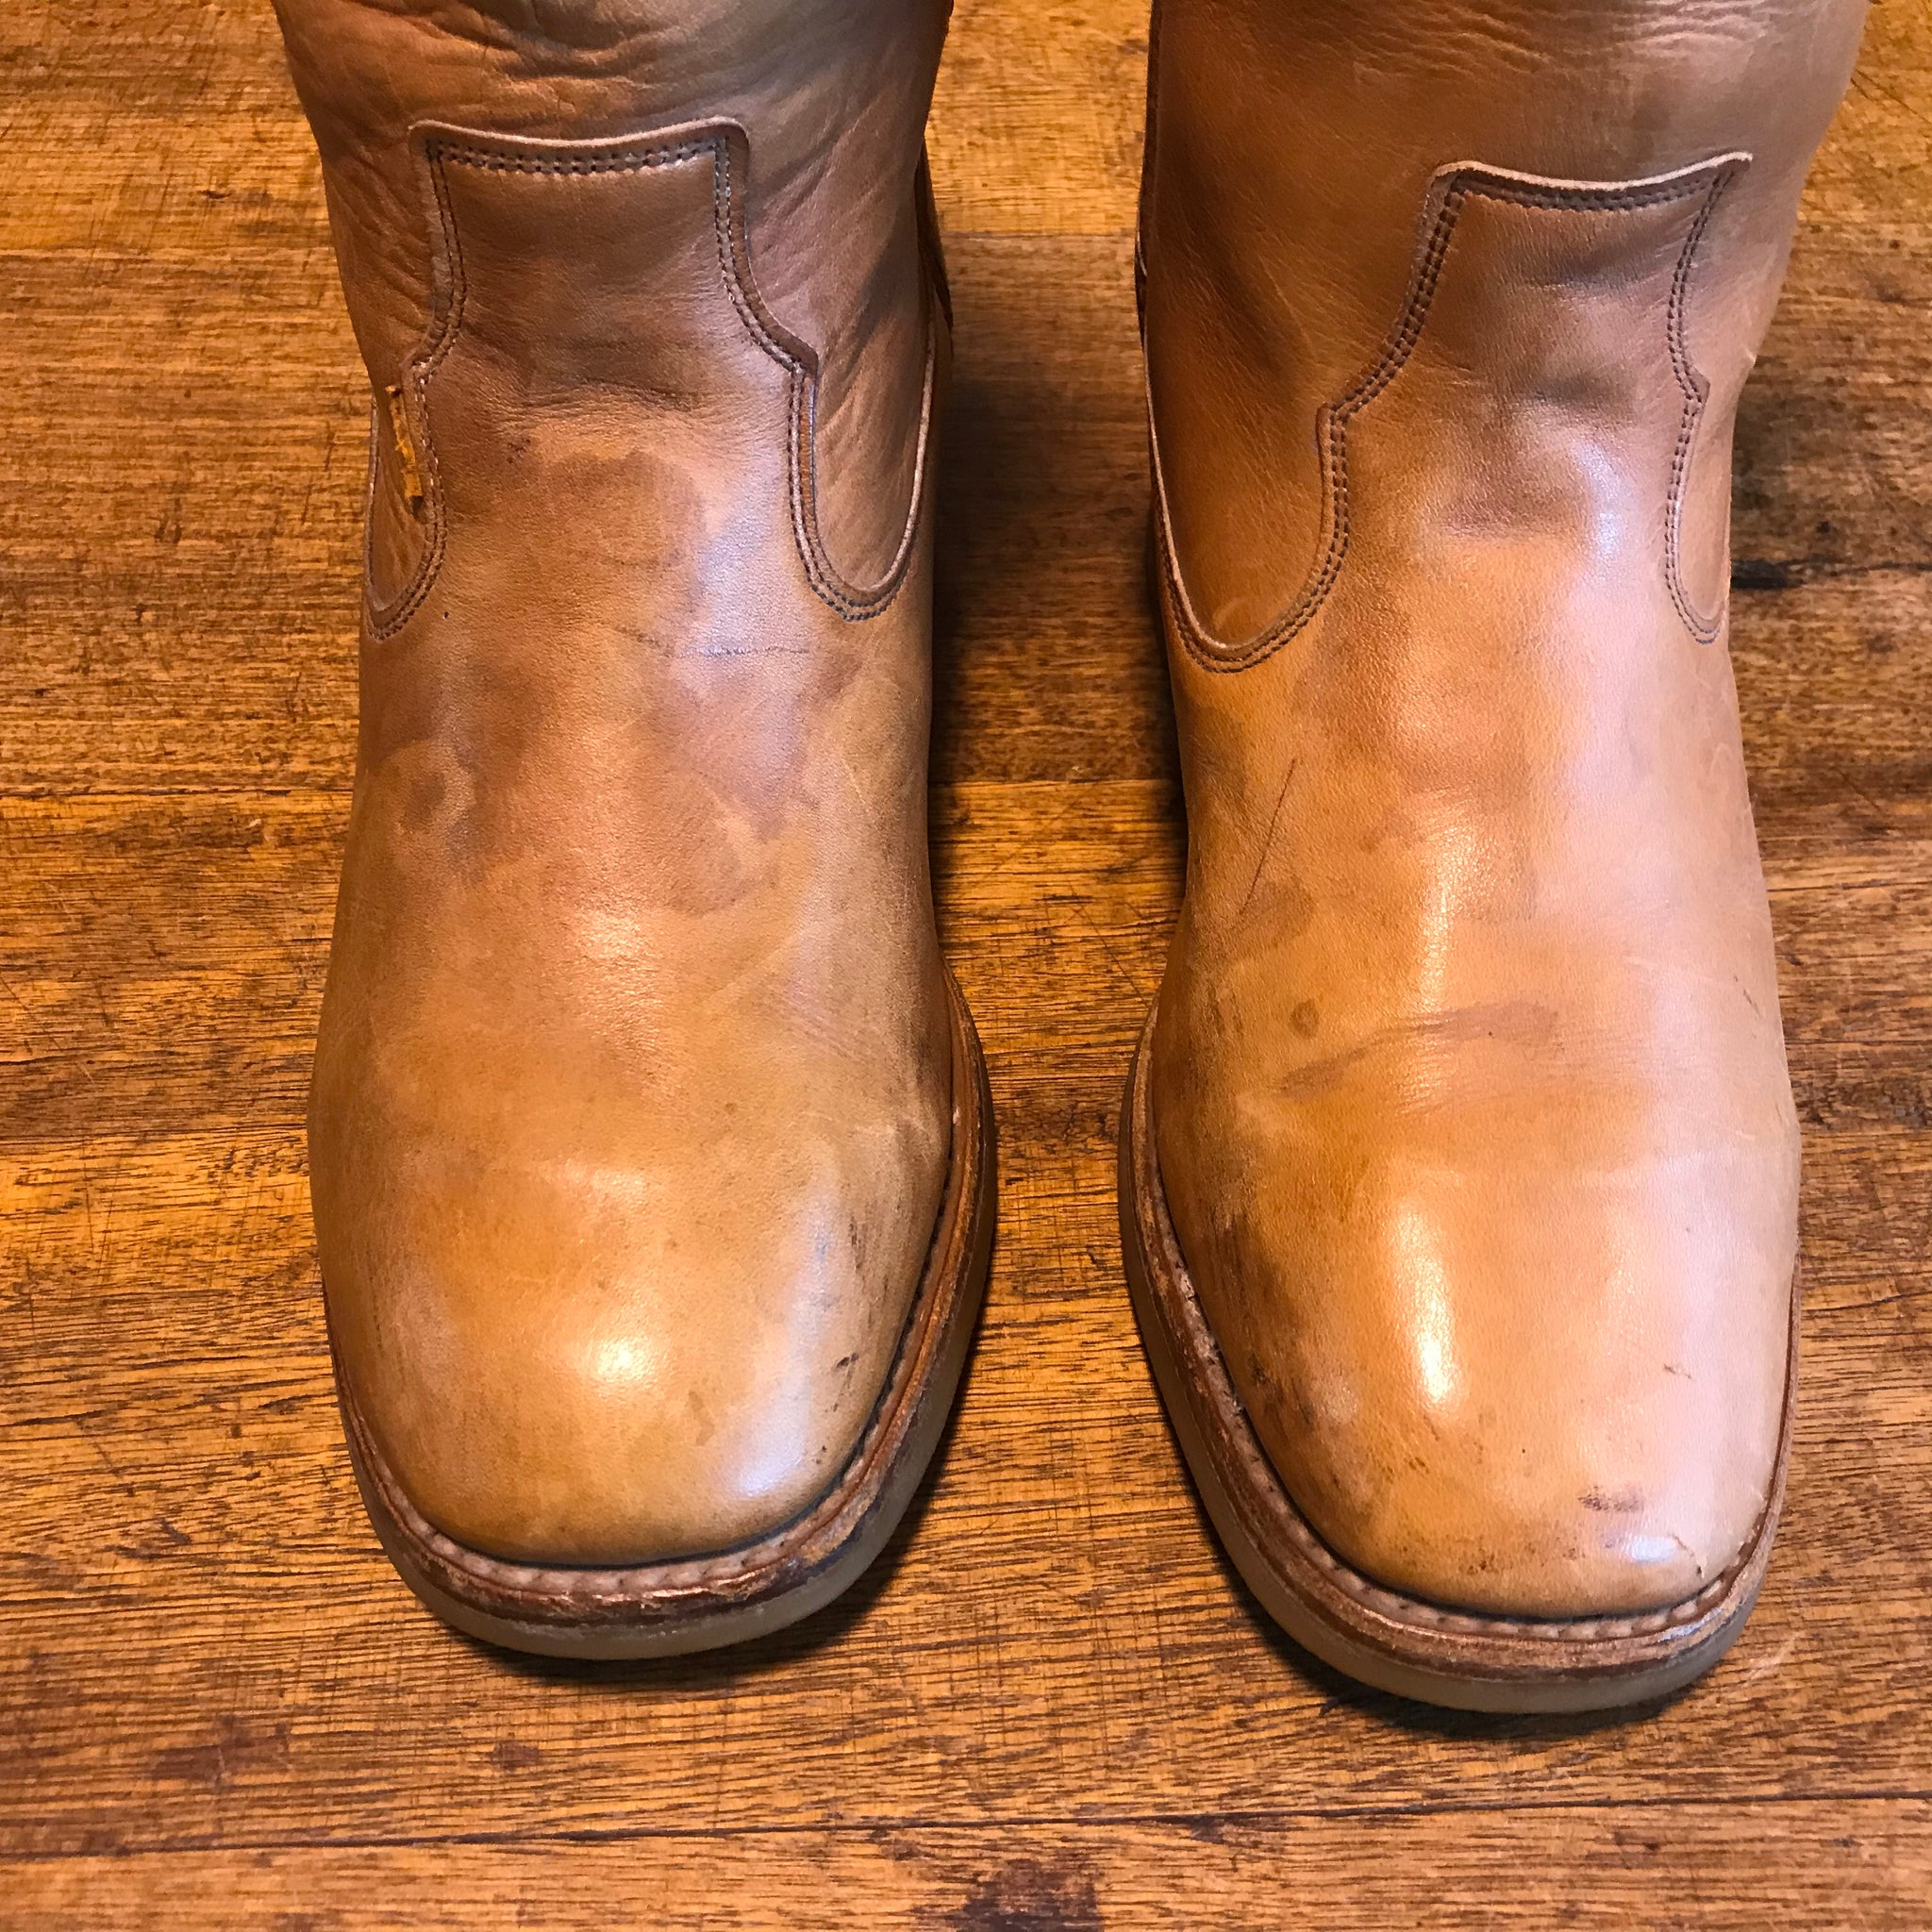 Levi's Strauss & Co - Cowboy Boots Vintage 70/80's Mens Leather Frye Style Boots Made in USA